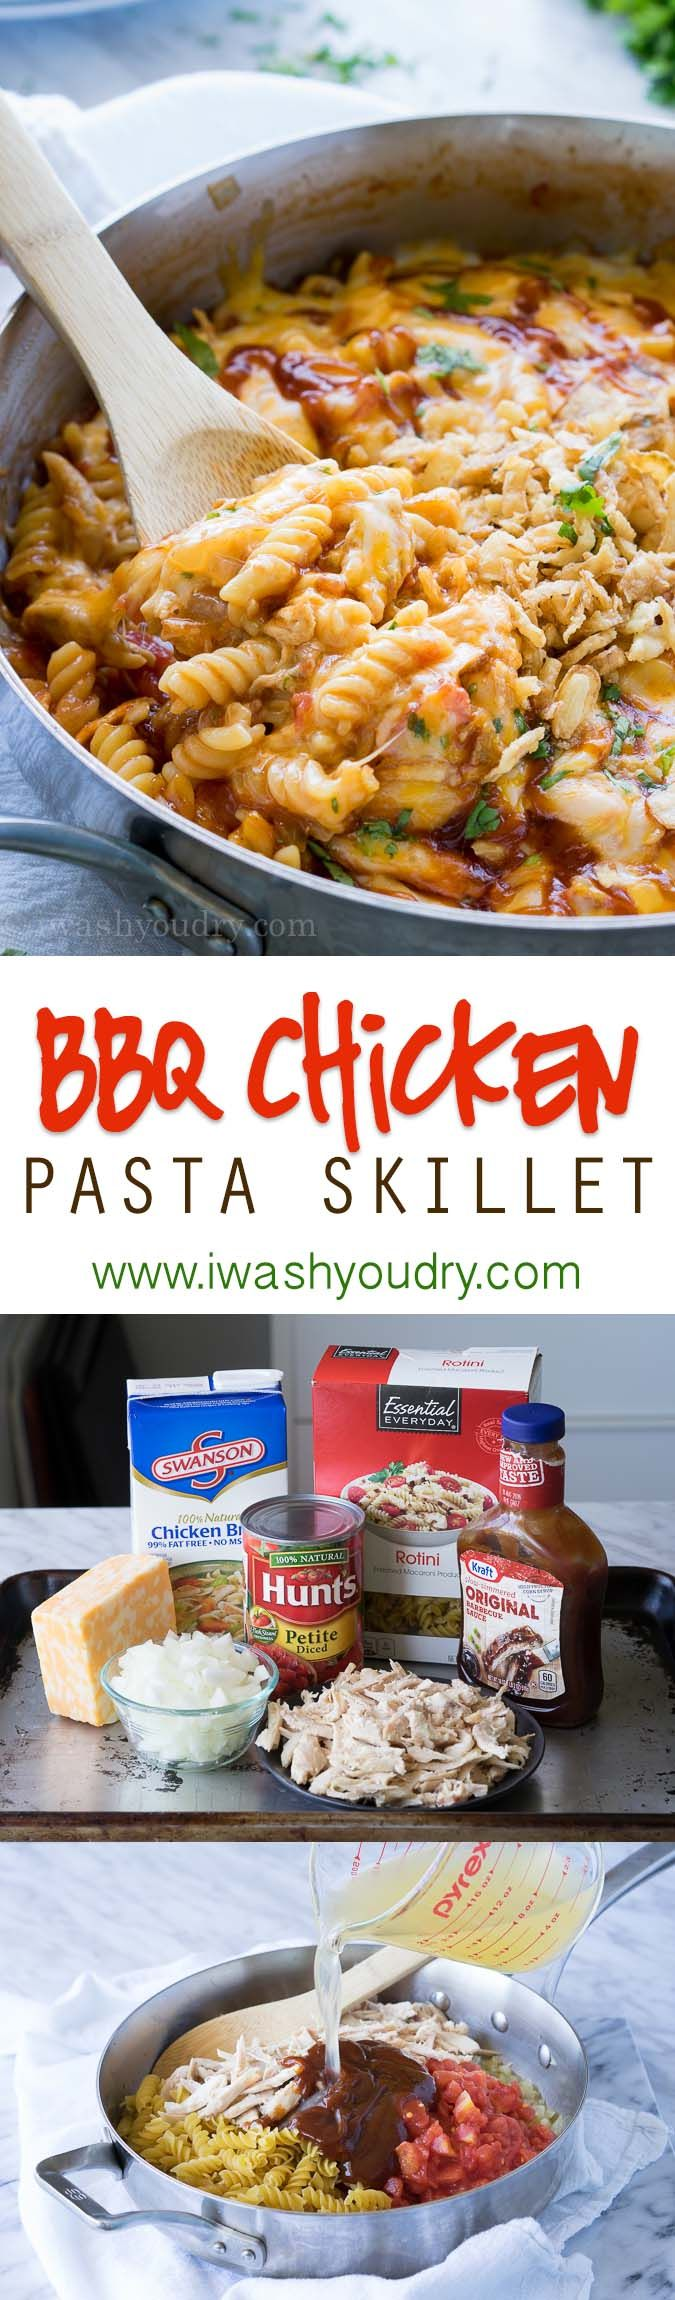 This cheesy one skillet BBQ Chicken Pasta is so easy to make! The pasta cooks in the skillet!